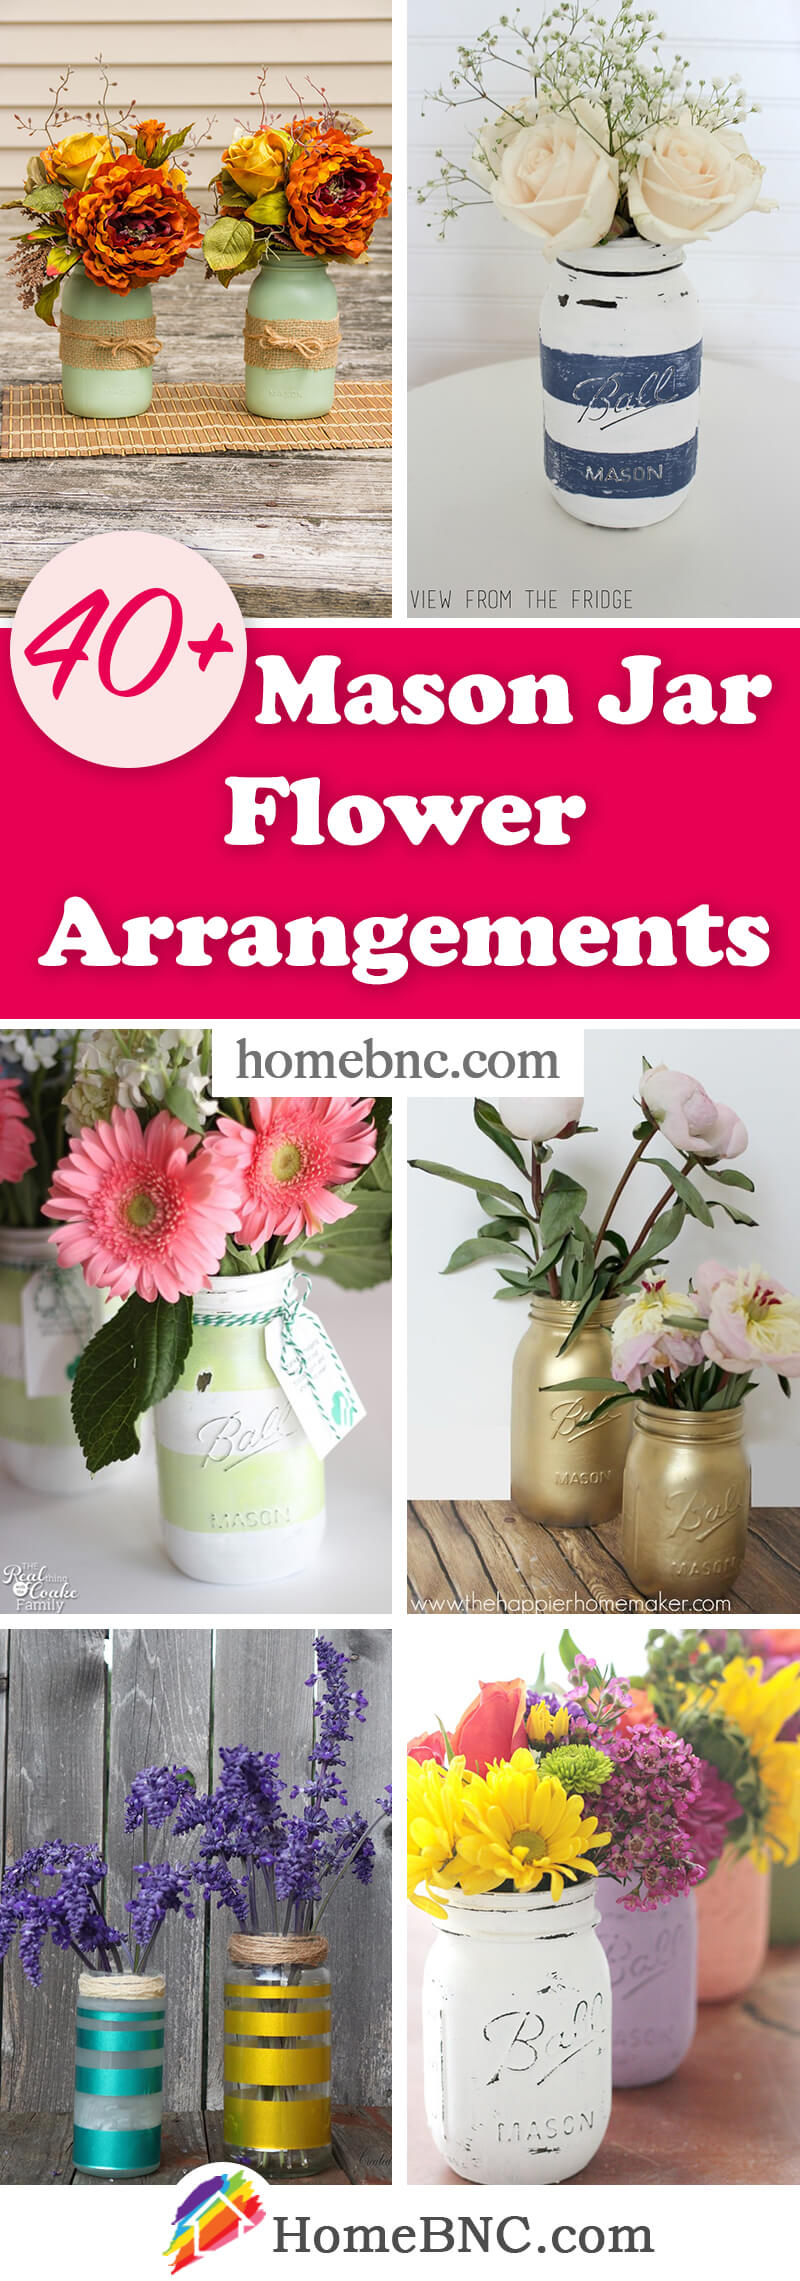 DIY Mason Jar Flower Arrangements